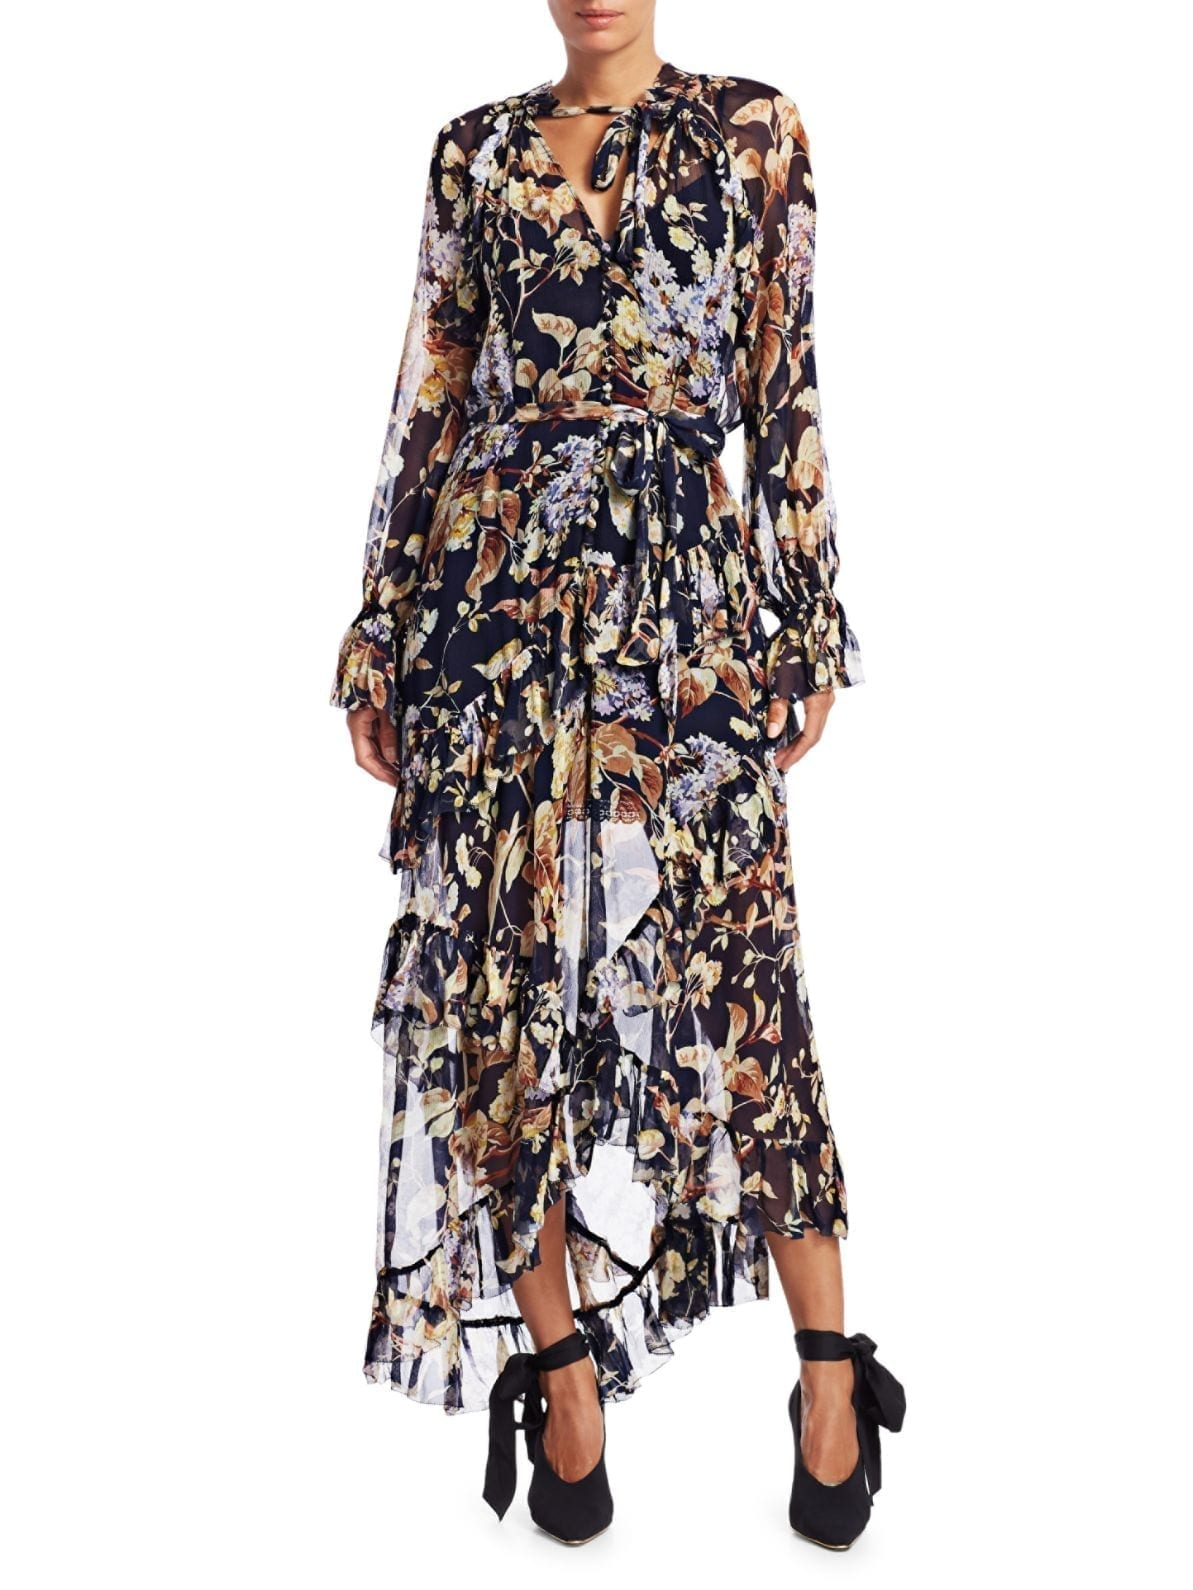 ZIMMERMANN Eye Spy Floral Silk Poet-Sleeve Dress